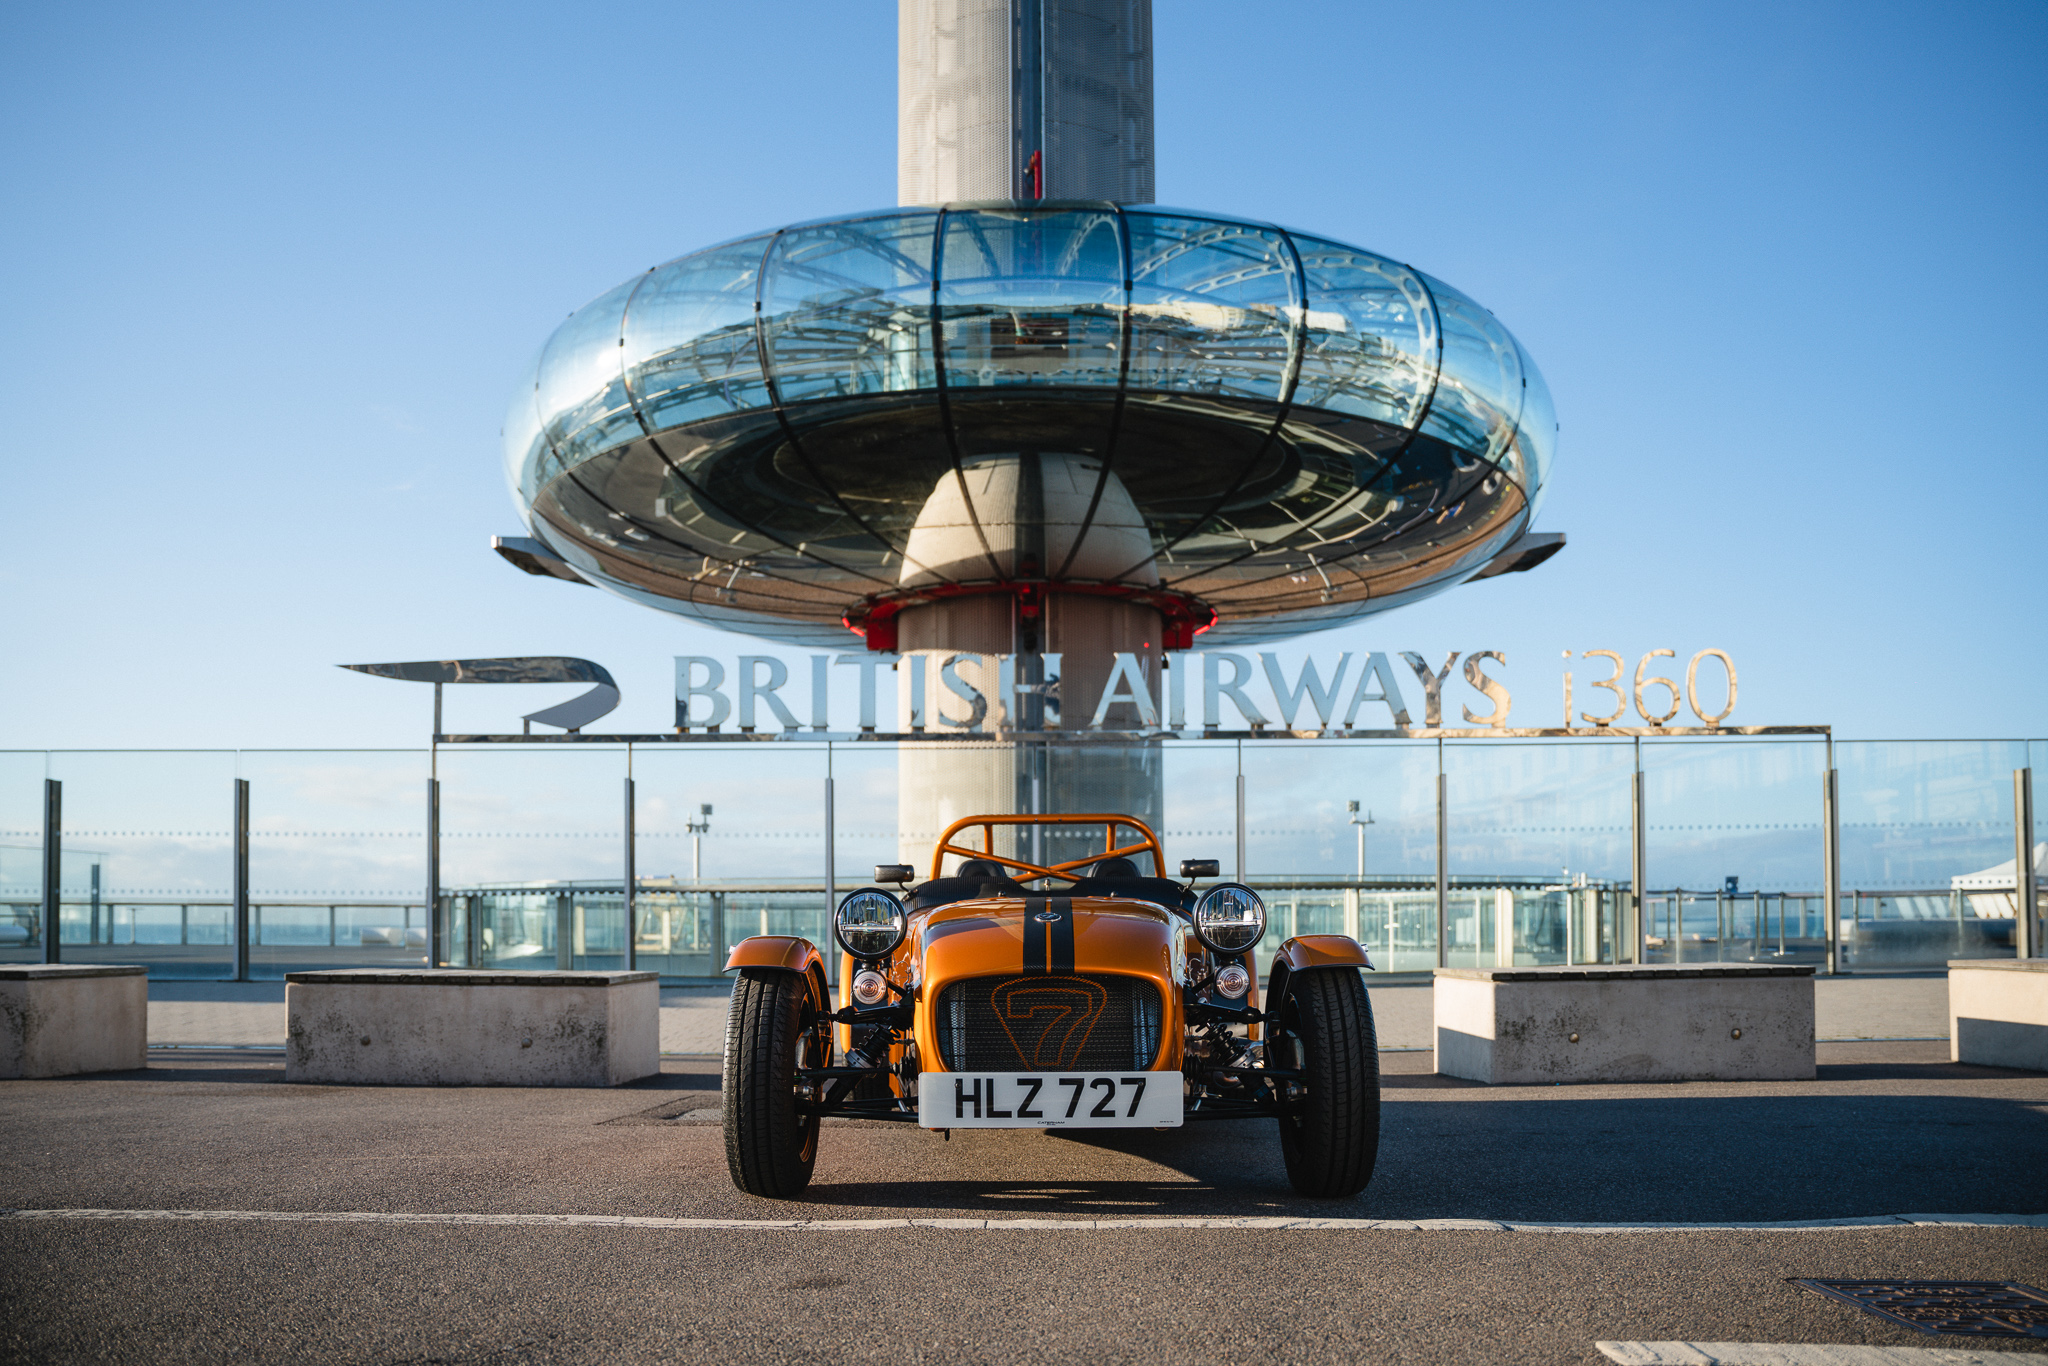 JOIN CATERHAM, AVON TYRES AND HALFORDS ADVANCED AT THE BRITISH AIRWAYS i360